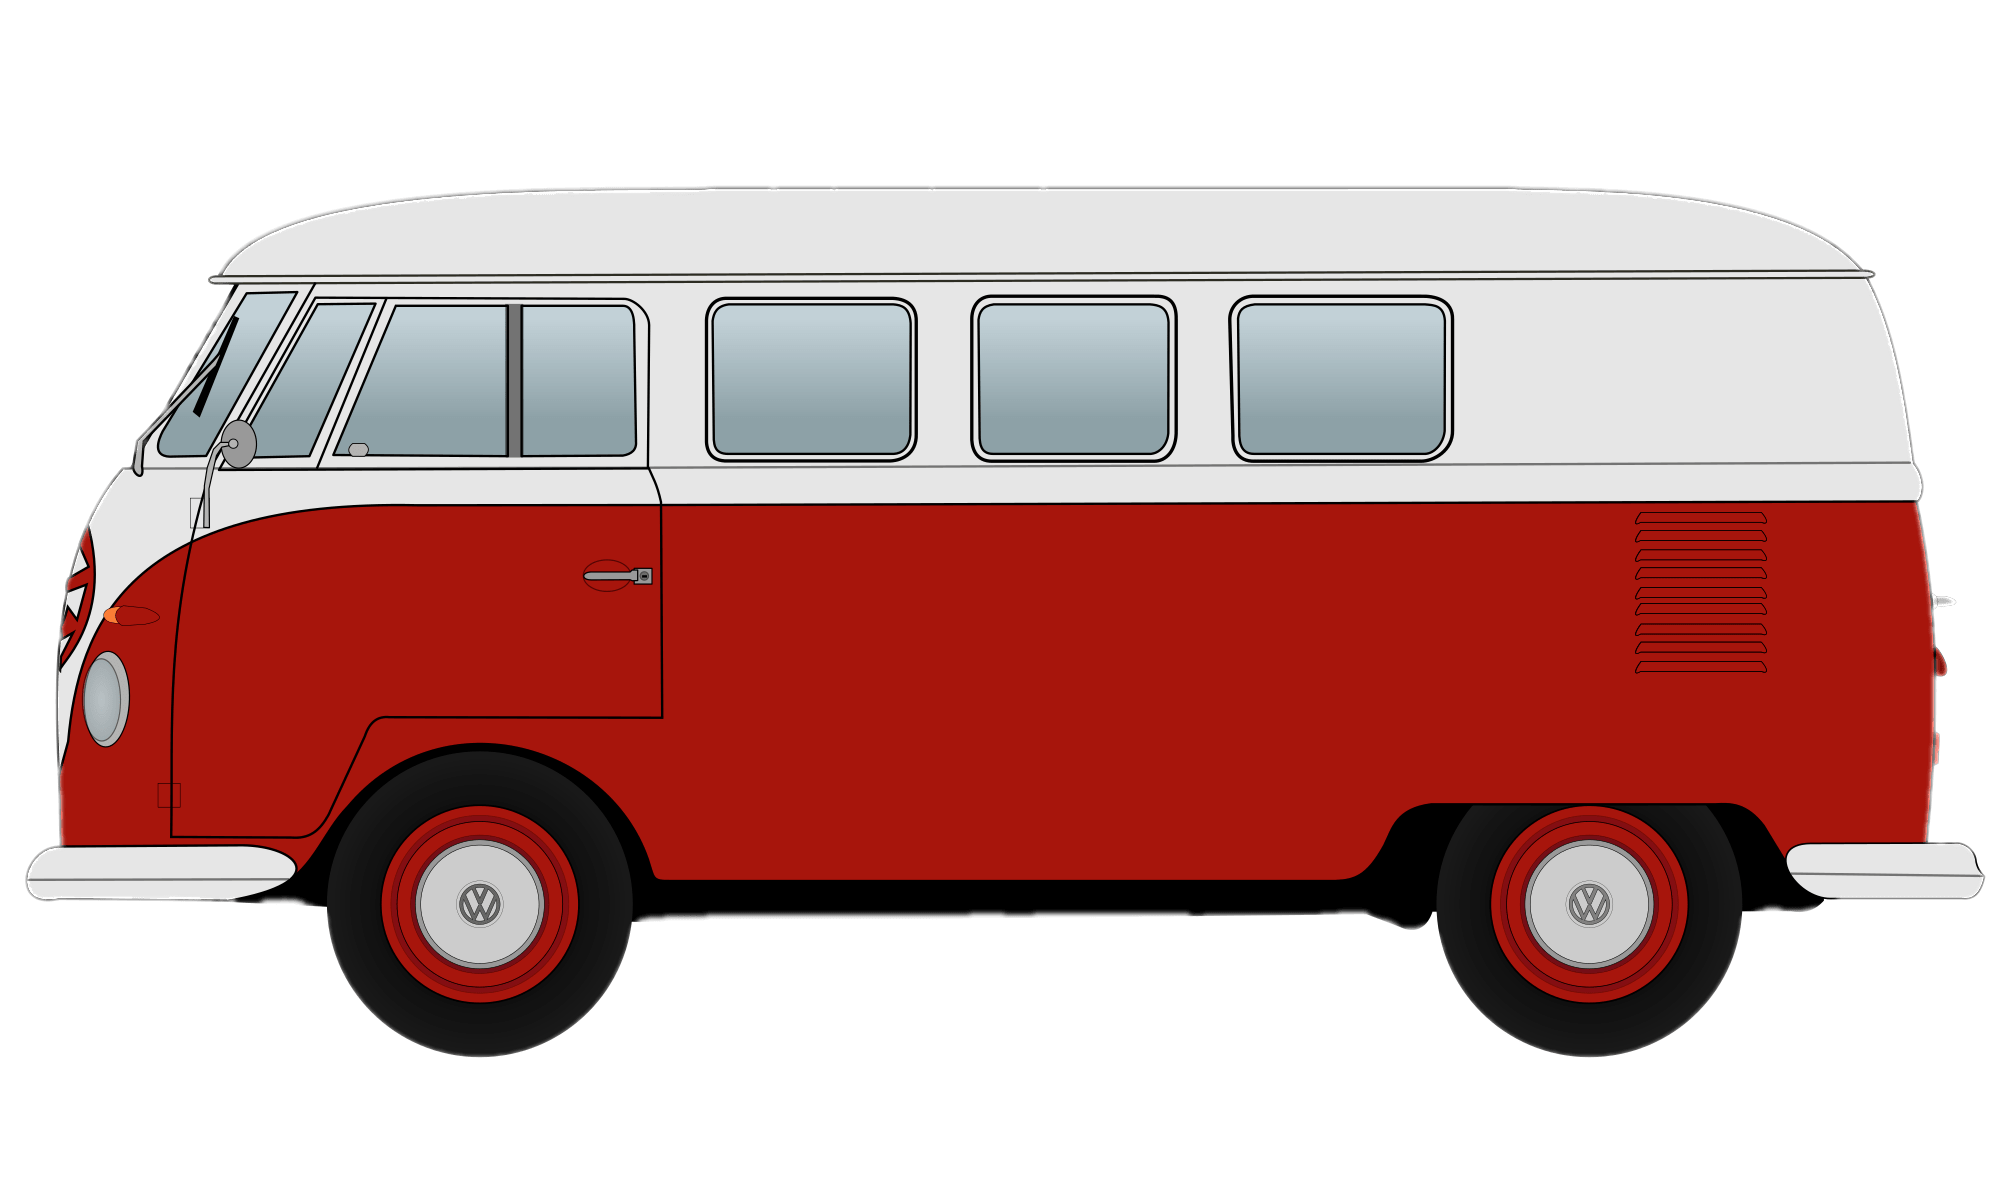 Red Volkswagen Camper Van Clipart transparent PNG.